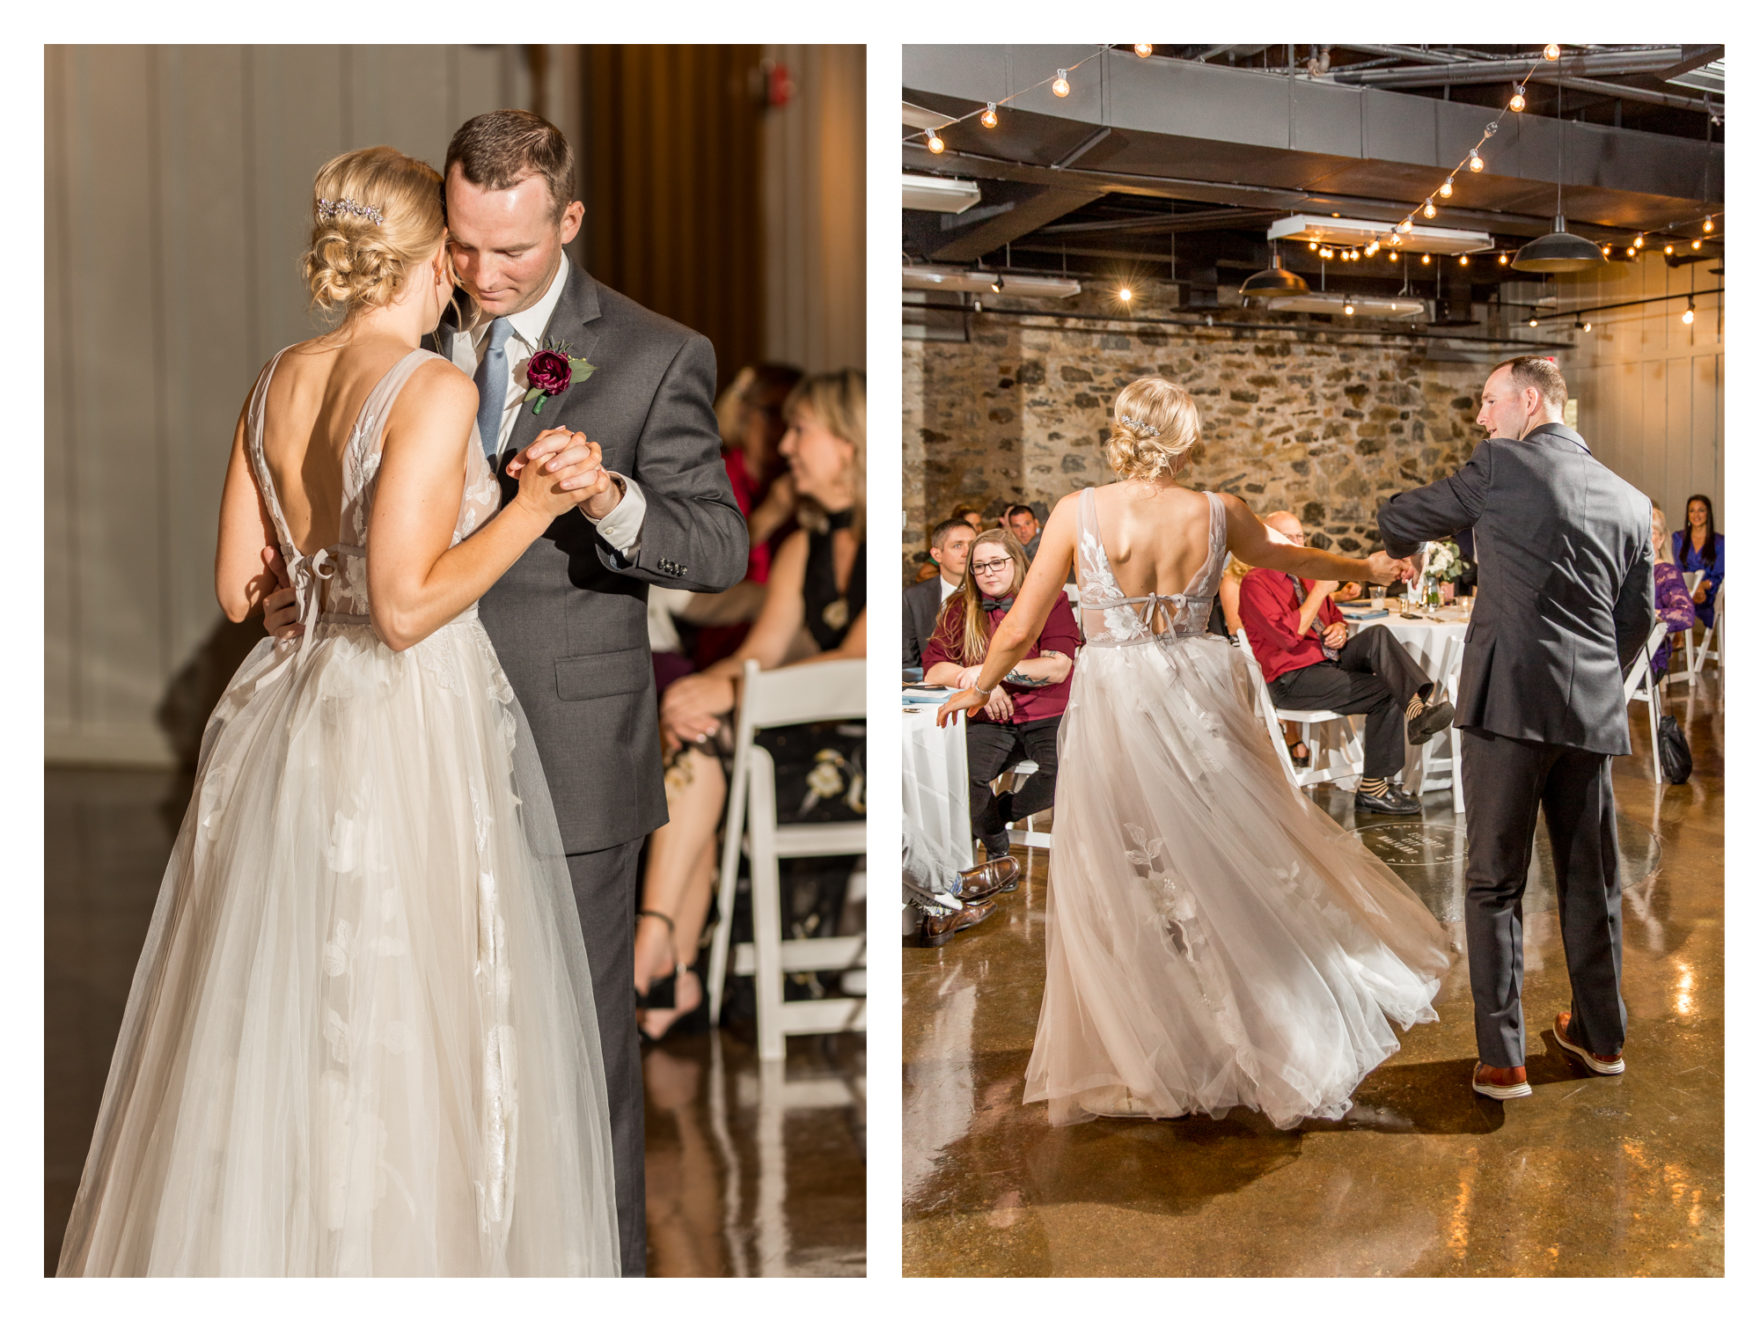 Old Ellicott City Wedding. Main Street Ellicott City Wedding. Ellicott City Strong. Main Street Ballroom. Ballroom Wedding. Rustic Ballroom. Fall Wedding. Warm Fall Wedding. Dusty Blue Wedding. Howard County Wedding. Howard County Photographer. Ellicott City Photographeer.